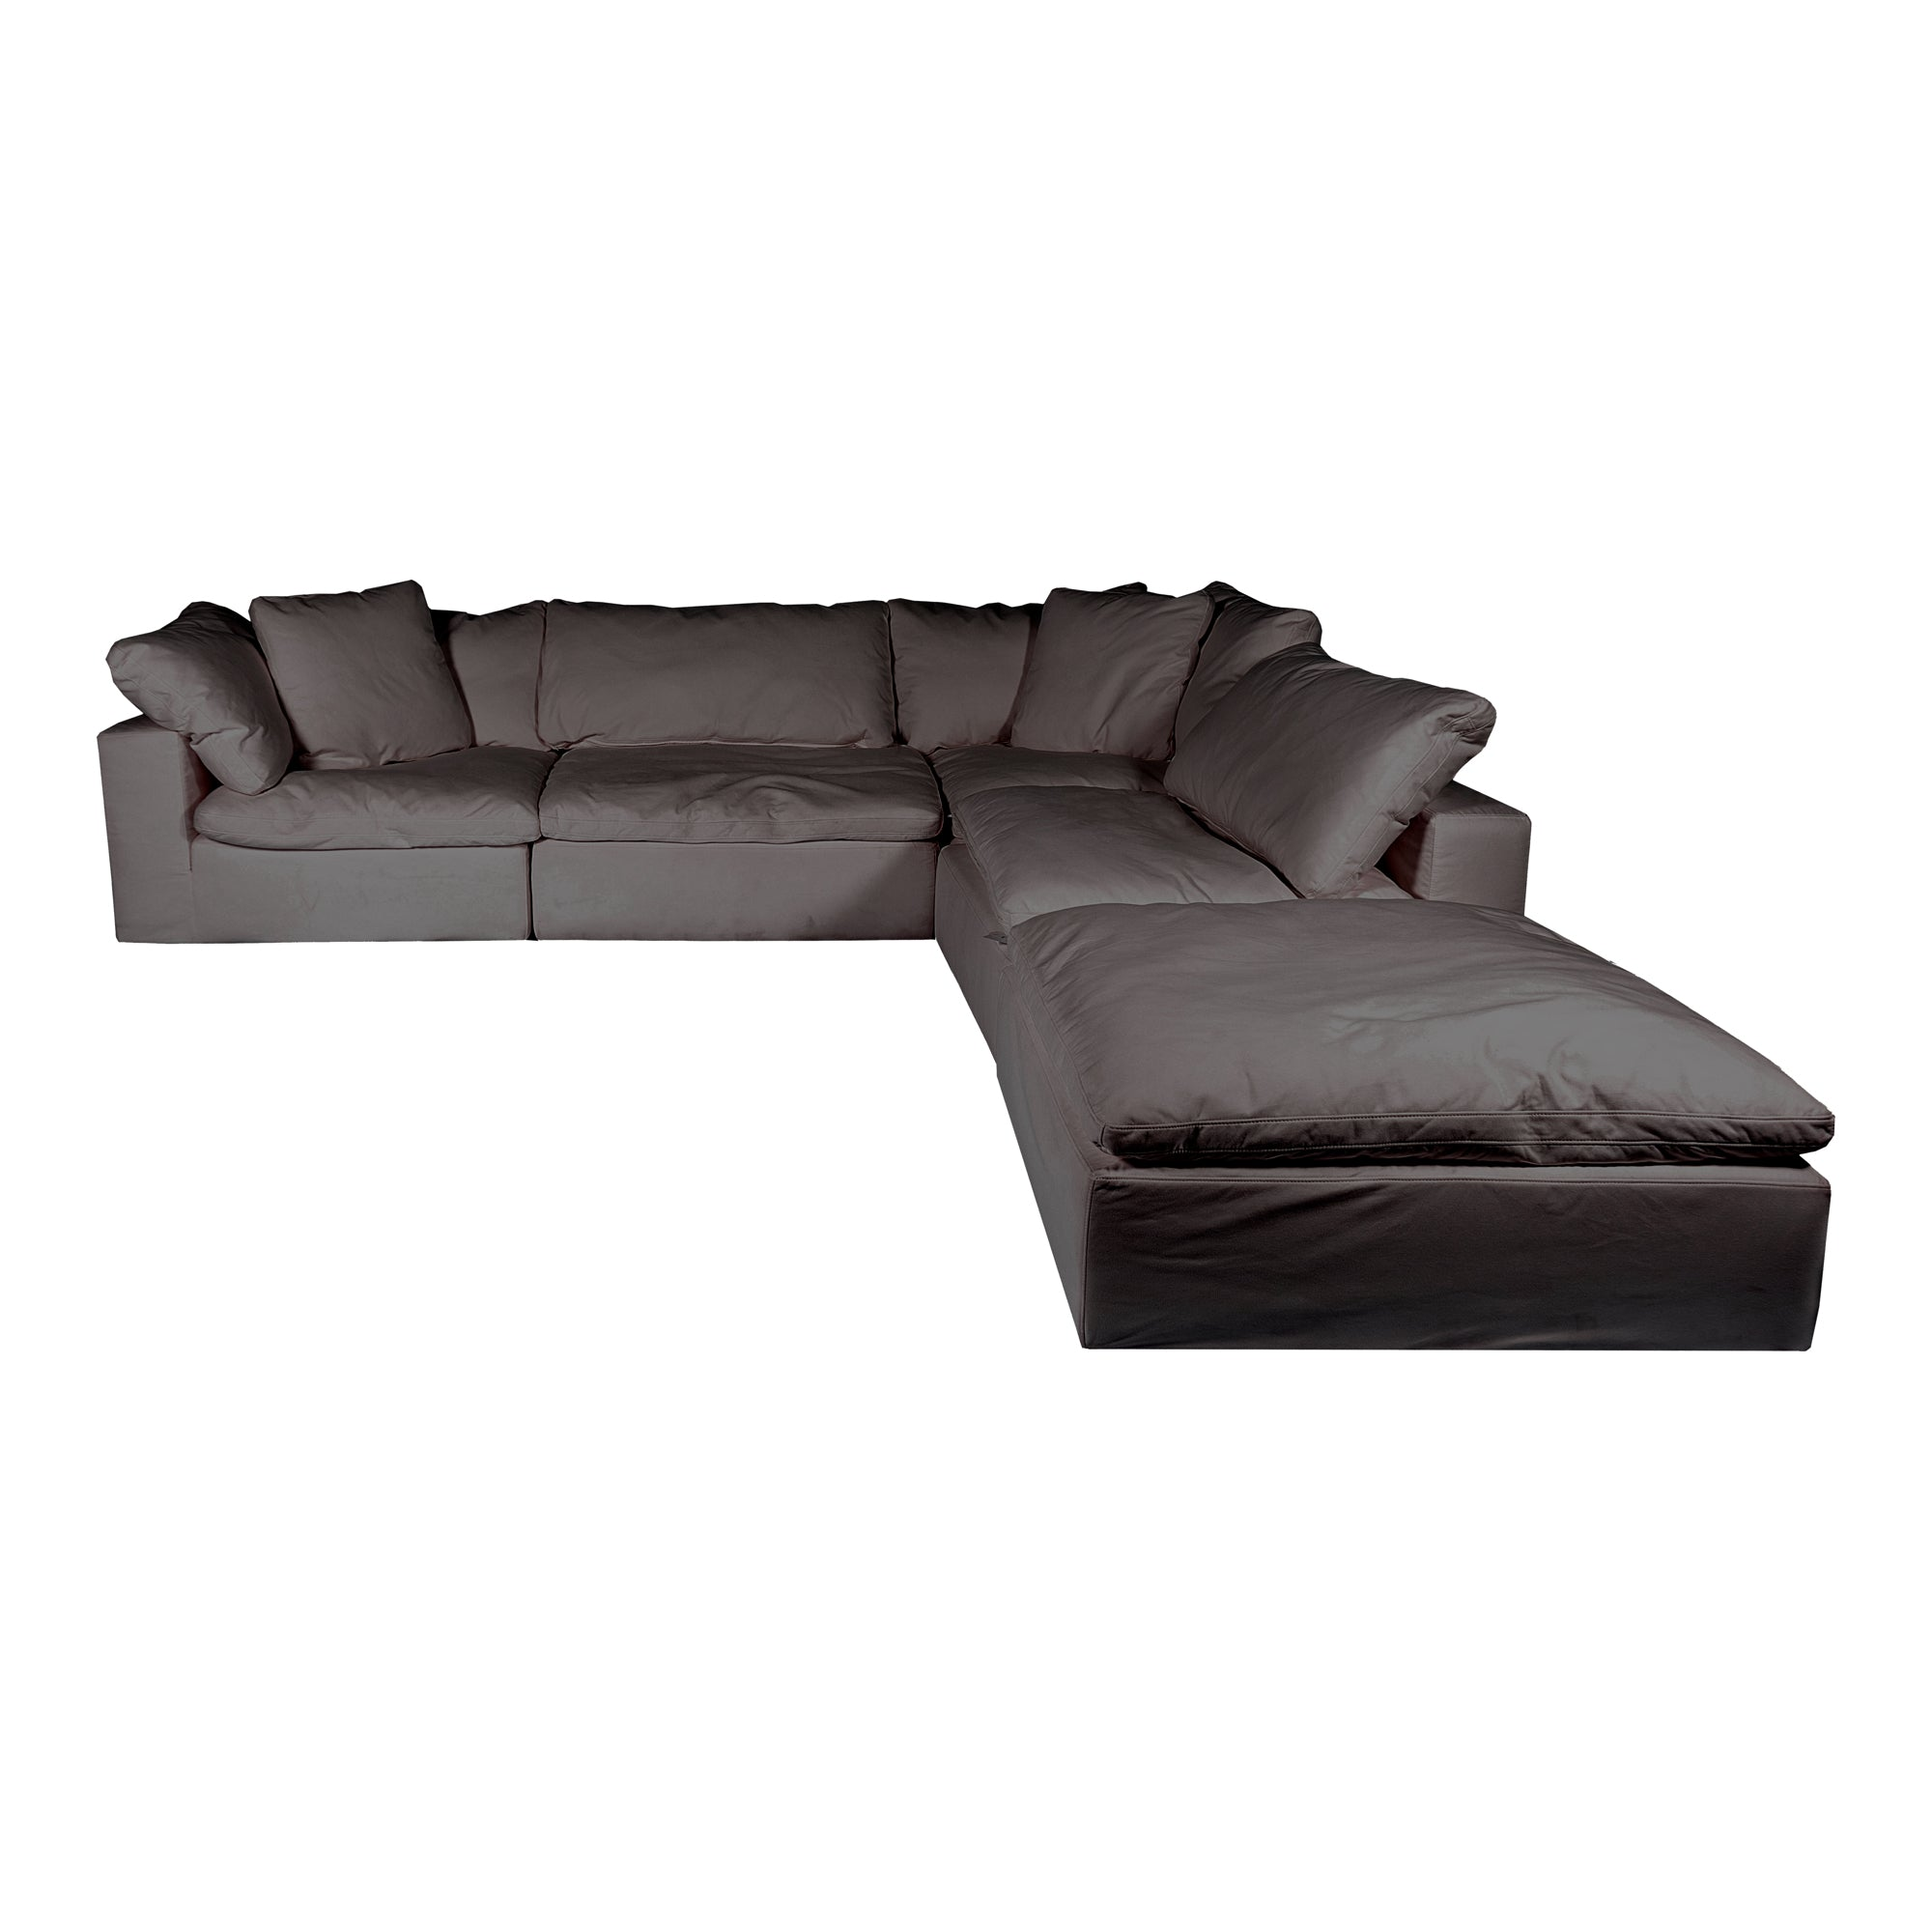 Clay dream modular sectional, grey - Tops-Dress